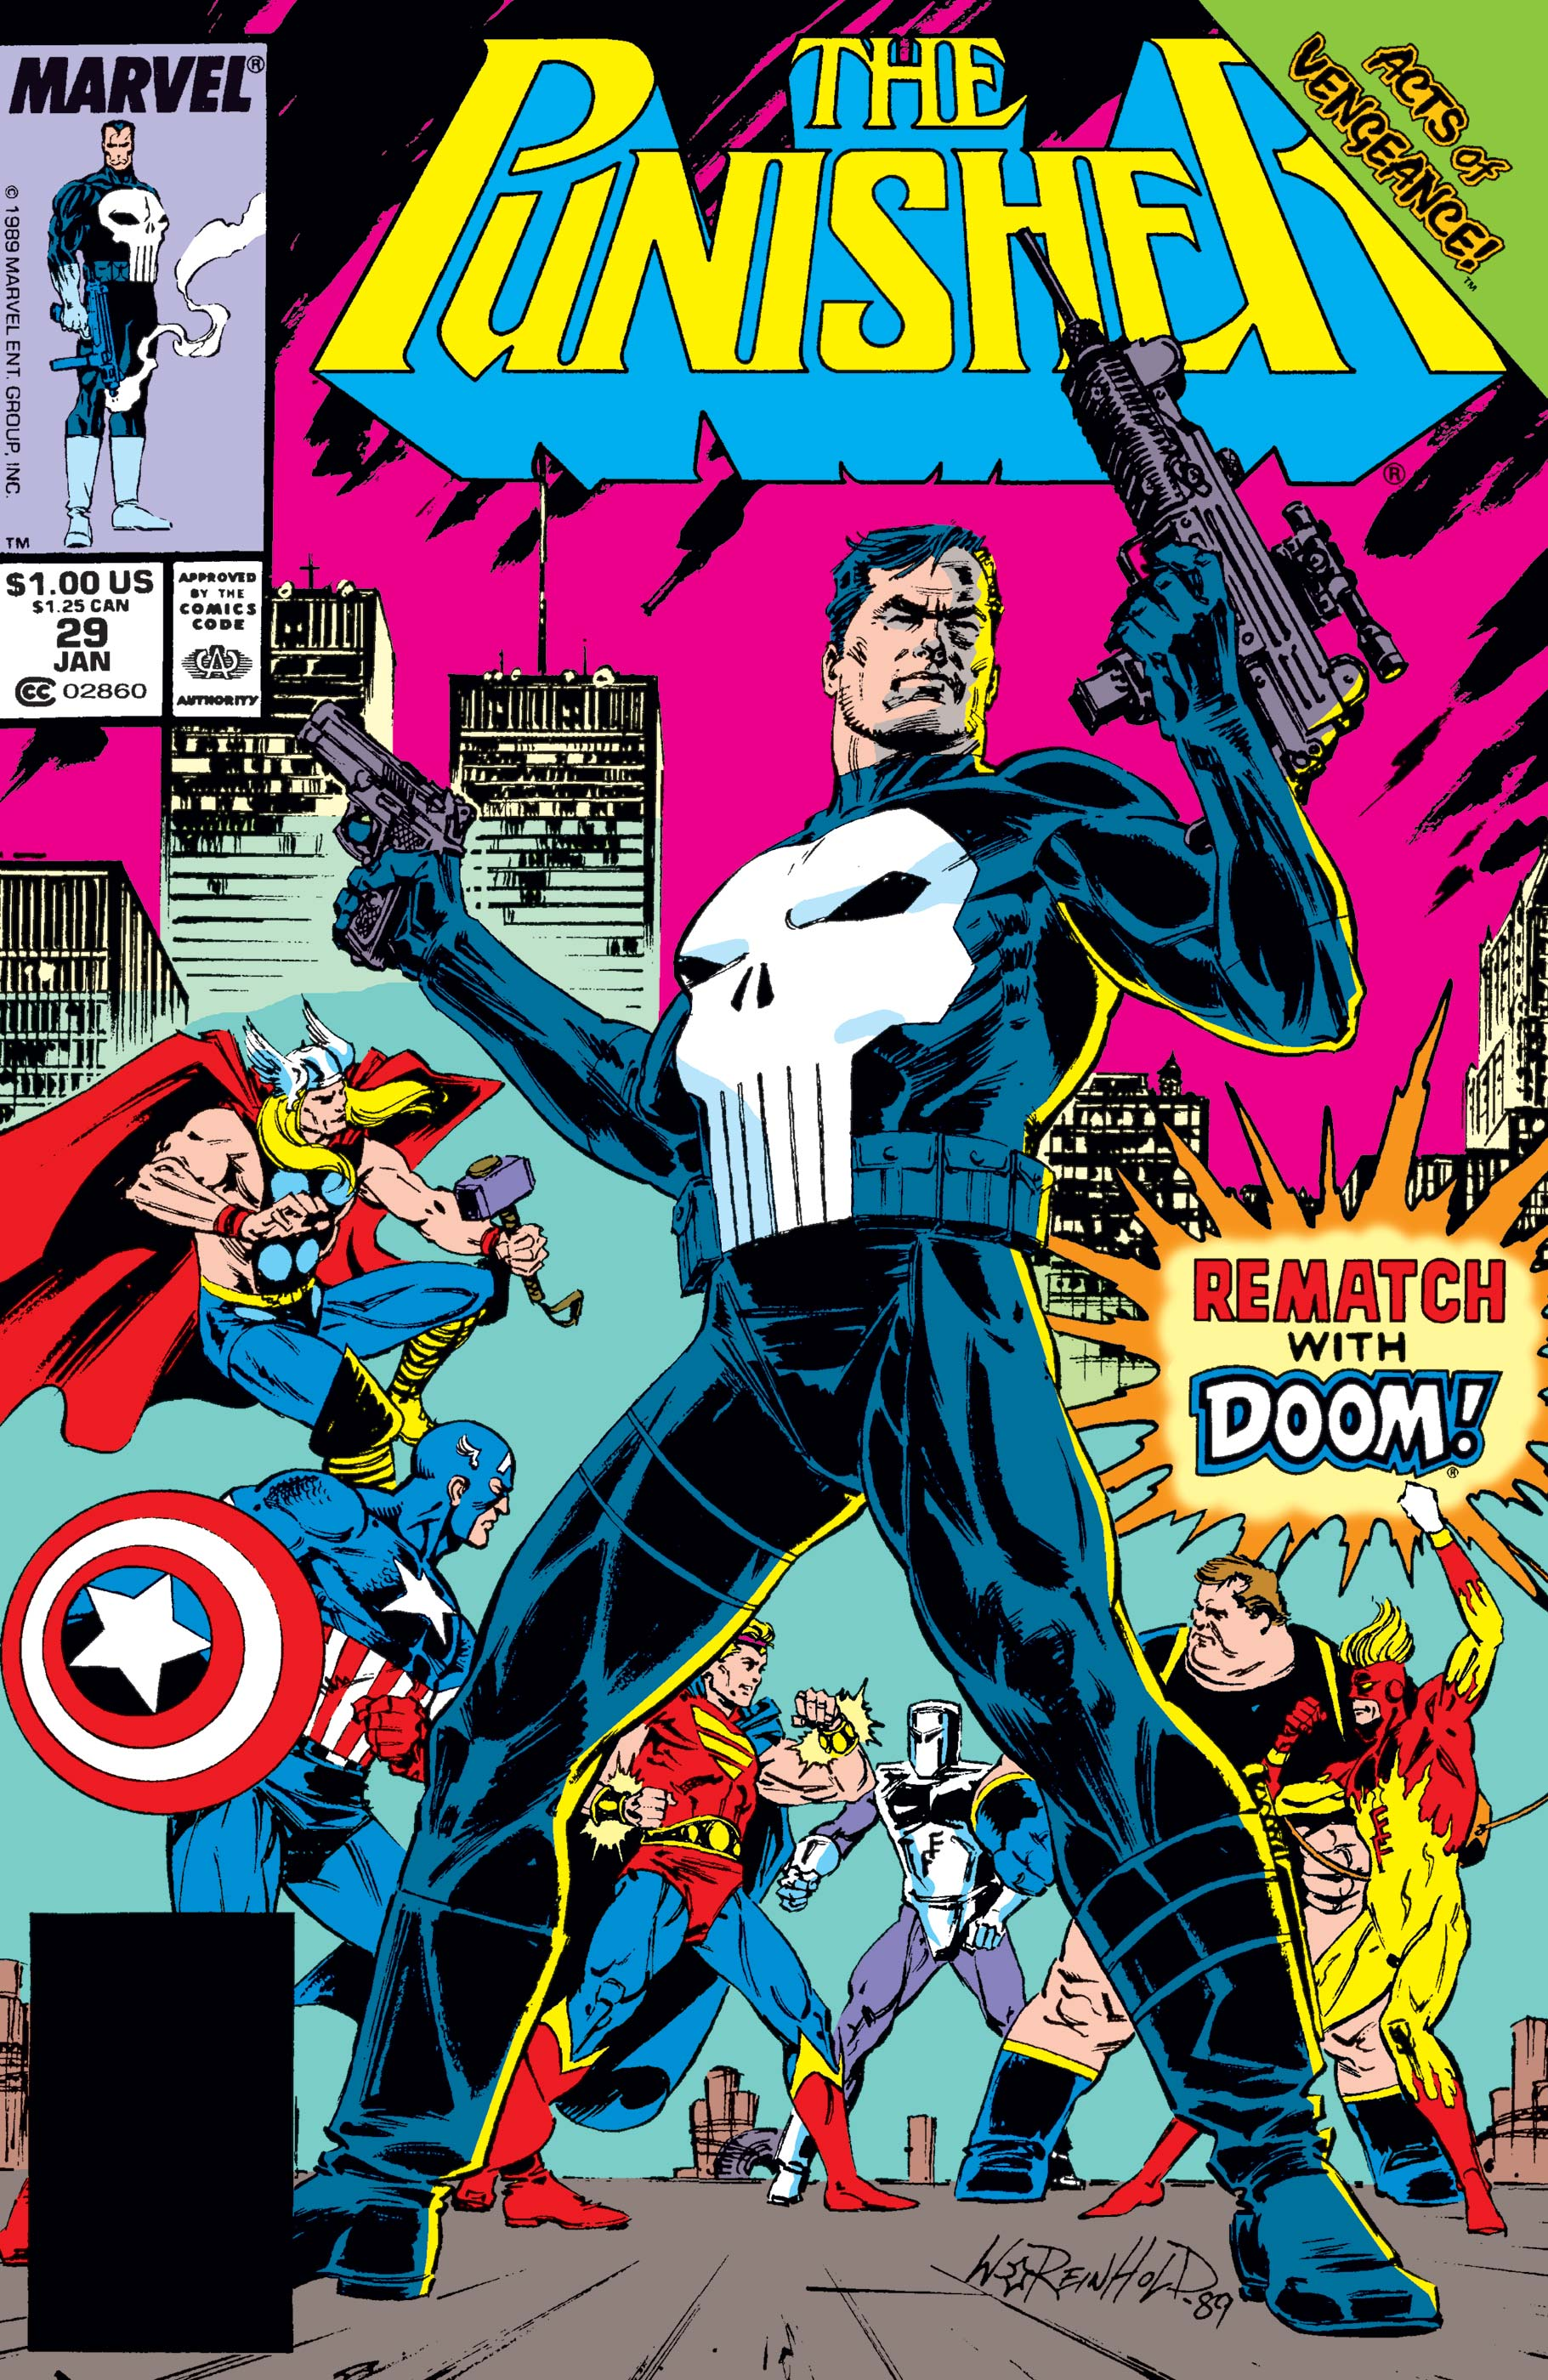 The Punisher (1987) #29